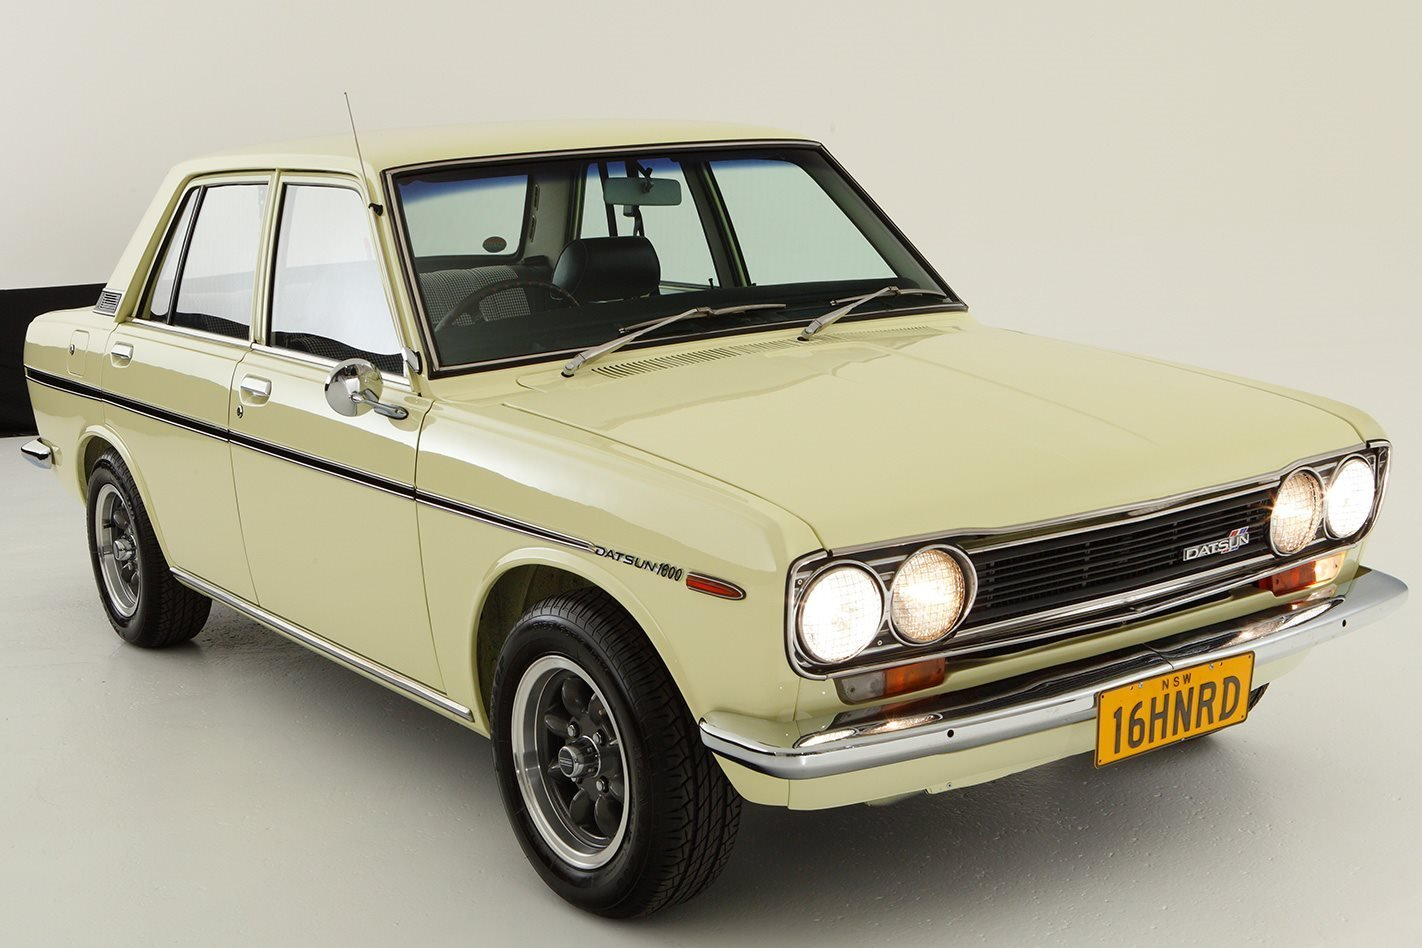 New Datsun 1600 Legend Series On This Month